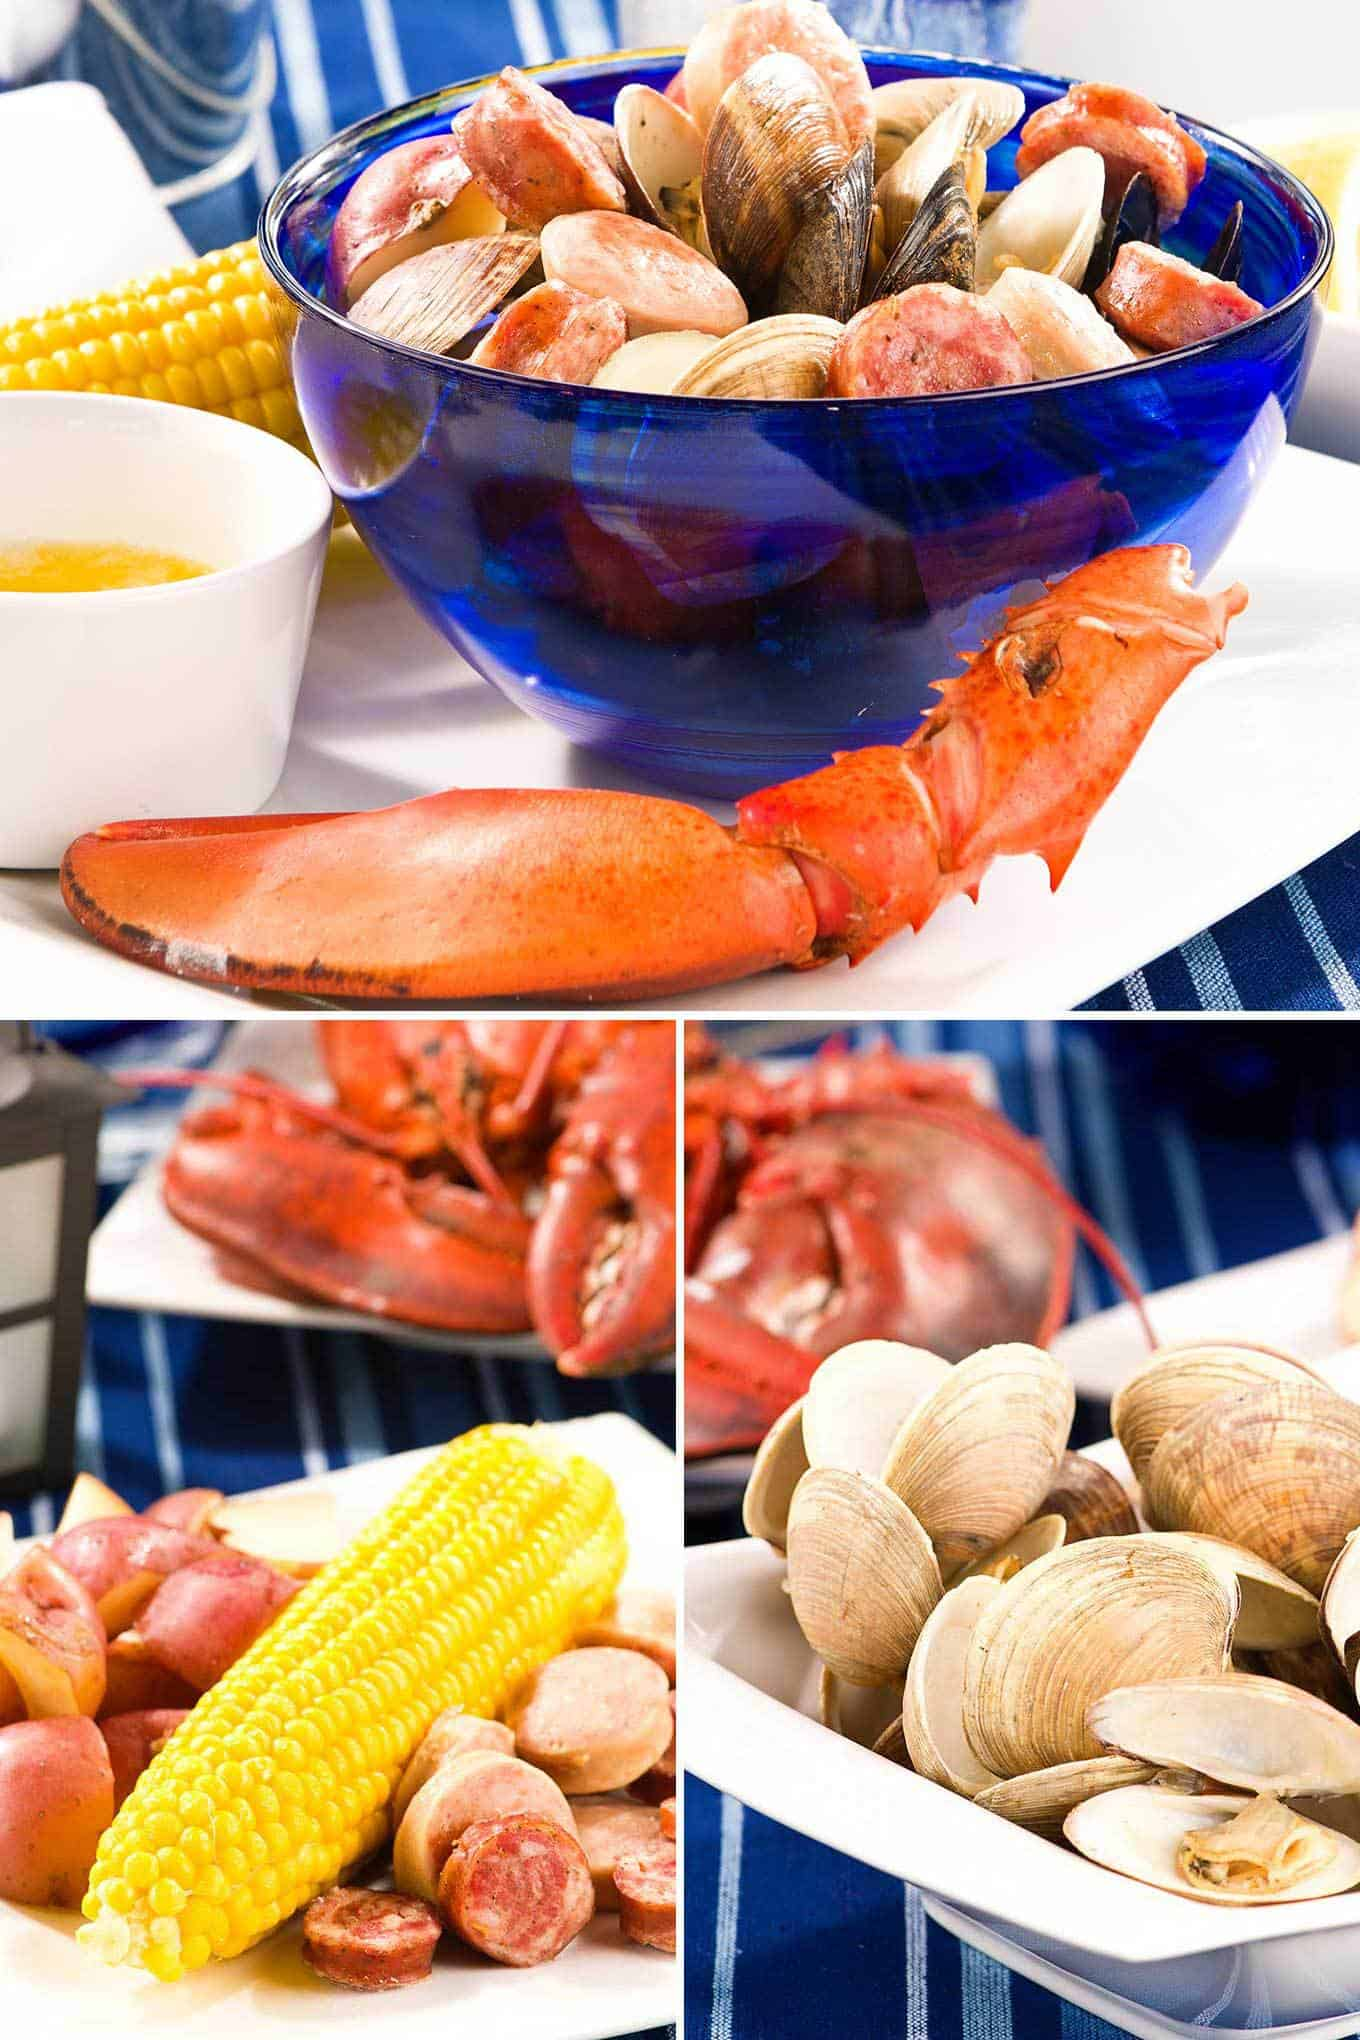 Collage photo of stovetop clambake ingredients including corn, potatoes, sausage, melted butter, and steamed clams.